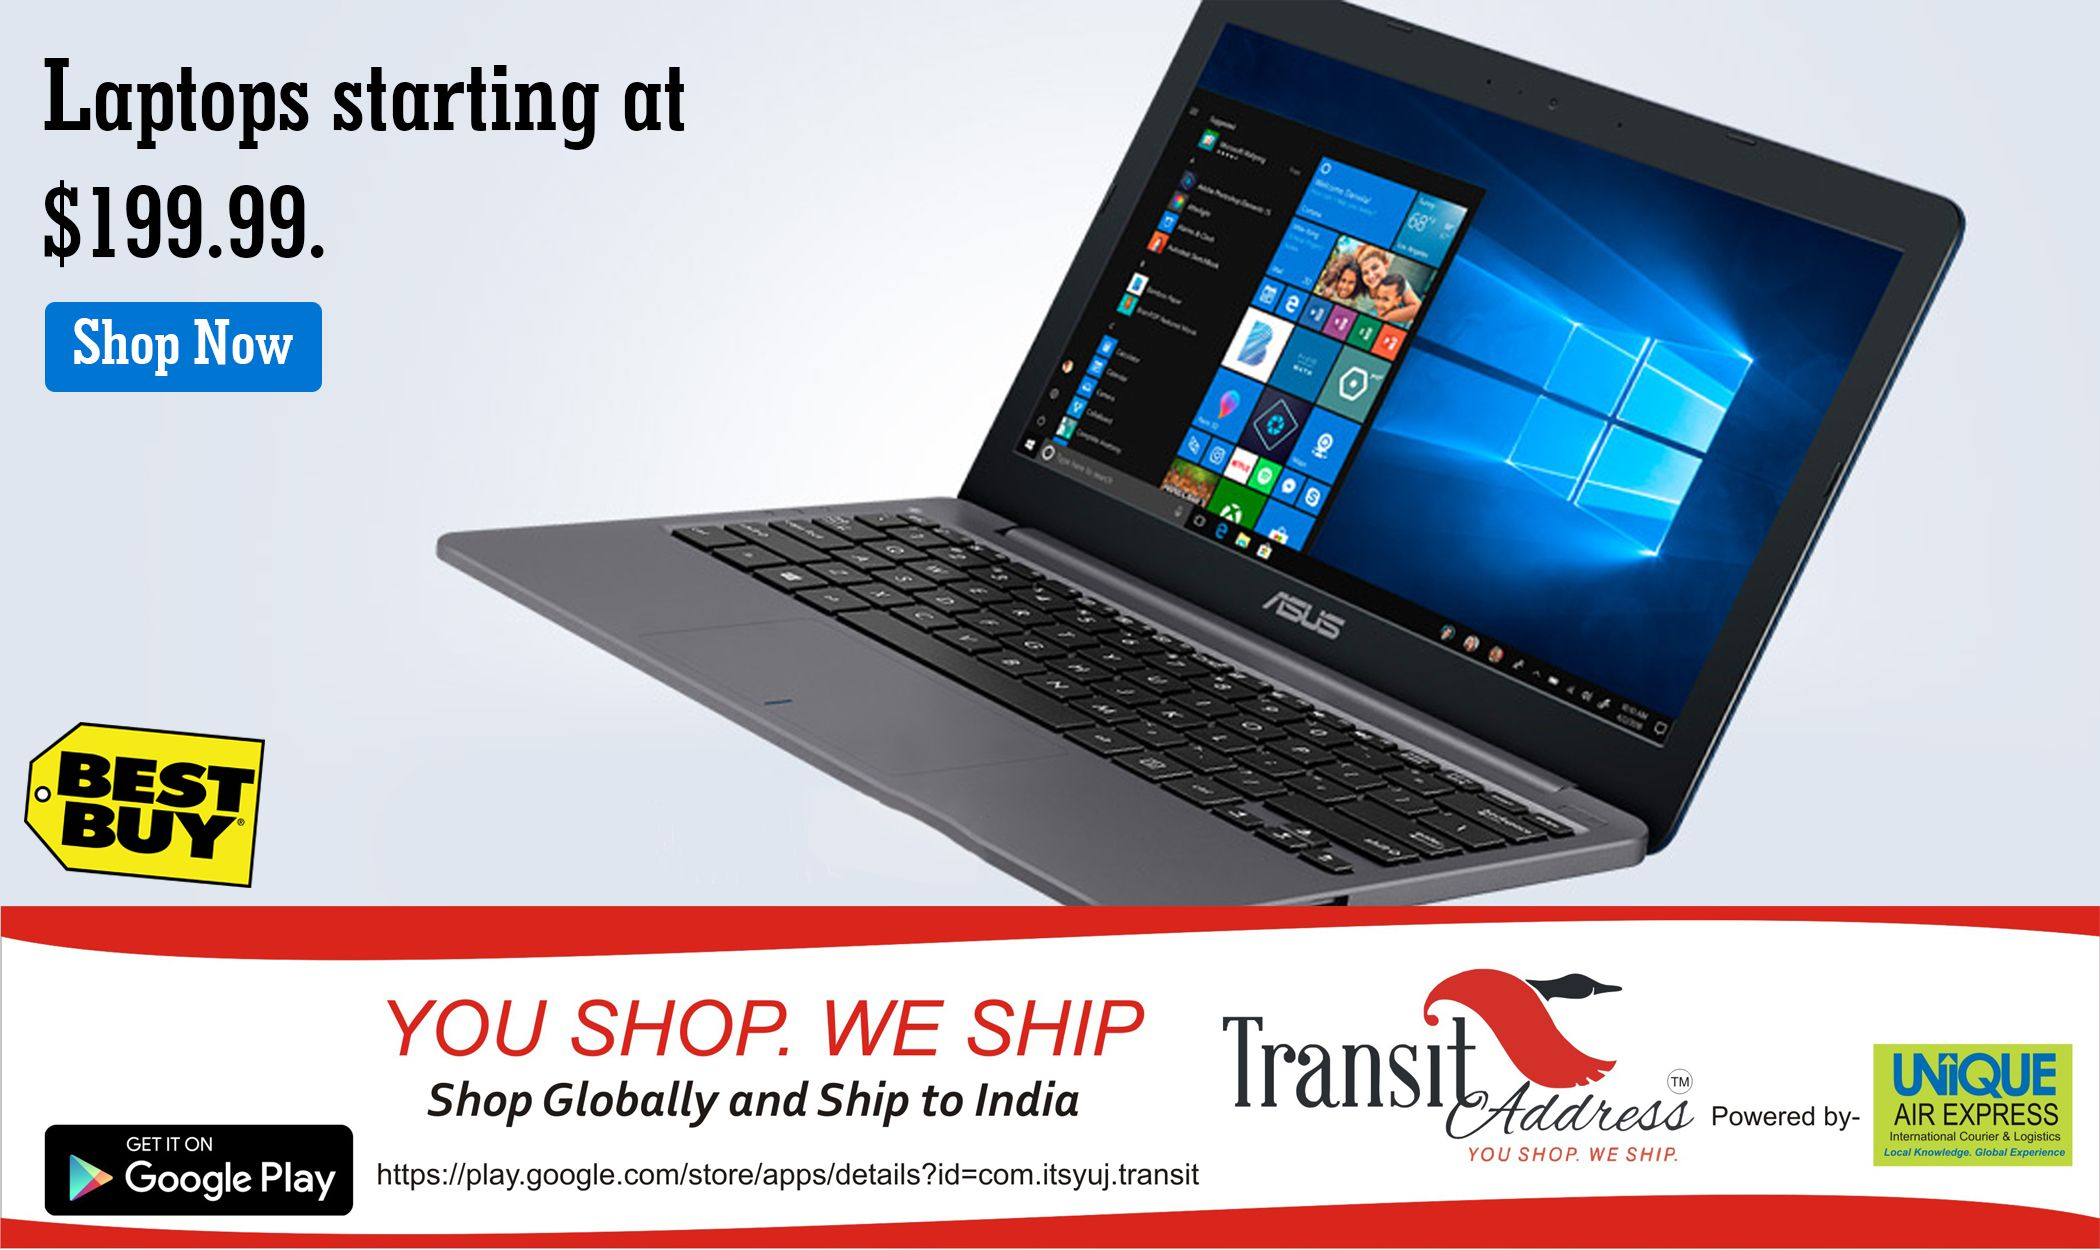 Lowest Prices Ever! Now Laptops starting at $199 99! Shop from Dubai